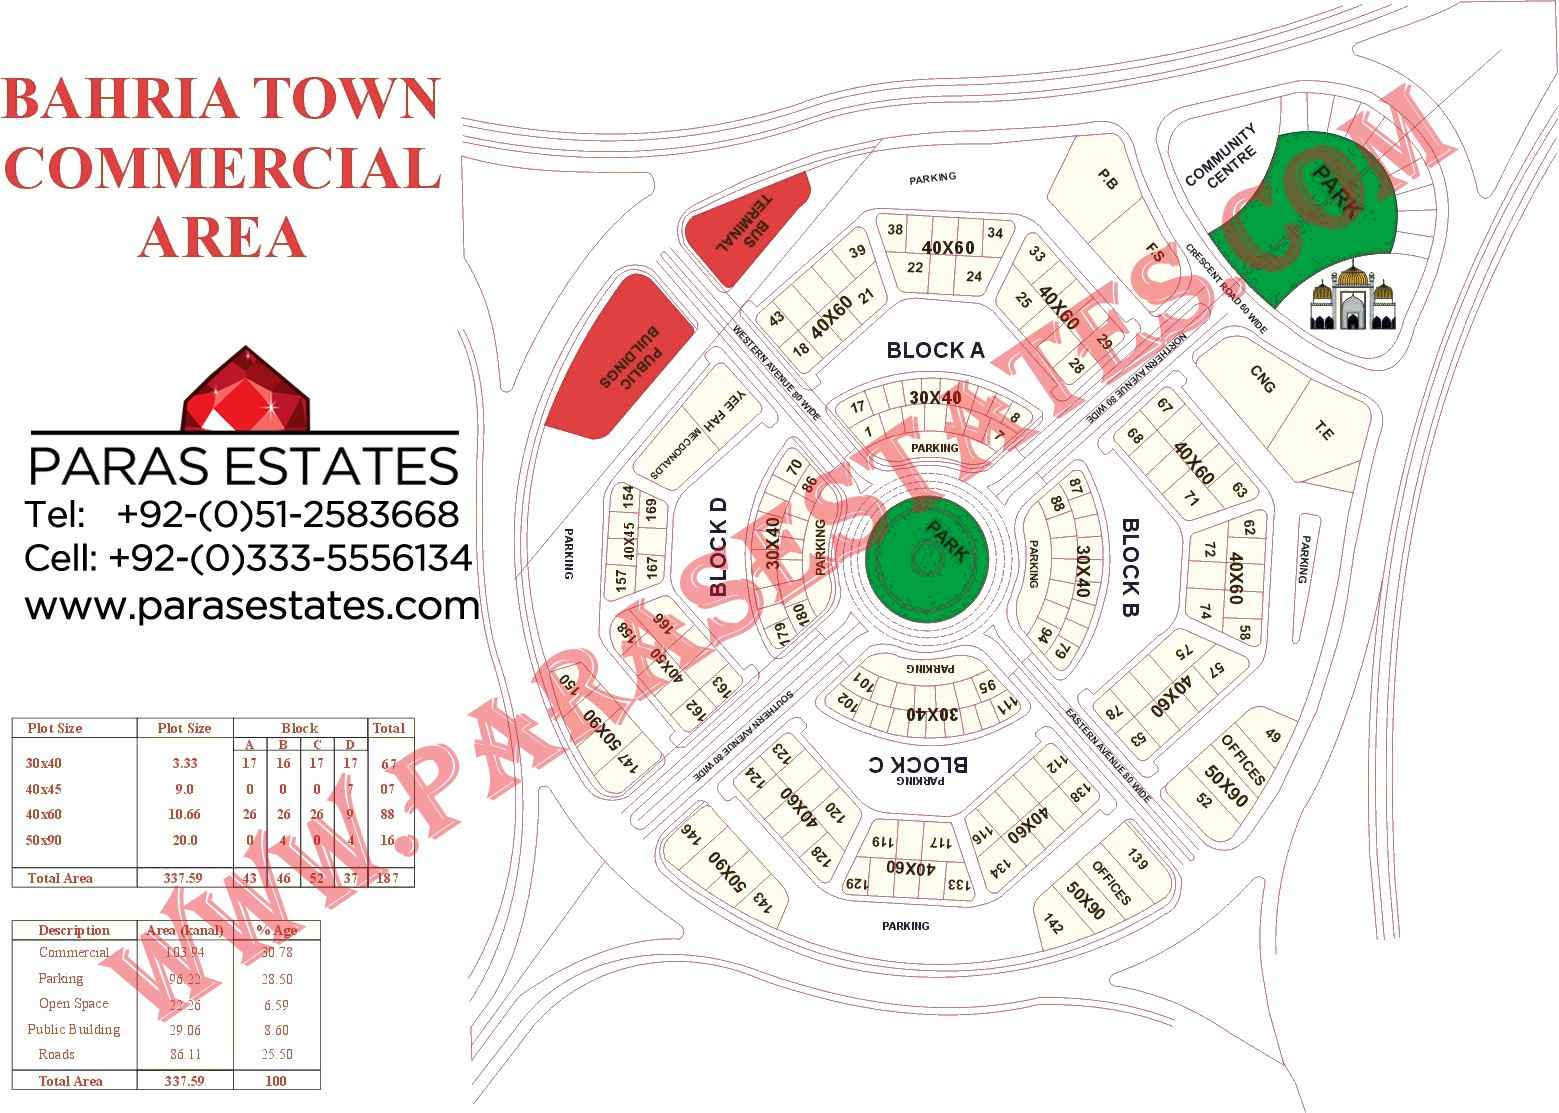 Plots, Bahria Civic Center, Plot No. 164 and 165, size 40×60 each, 5 ...